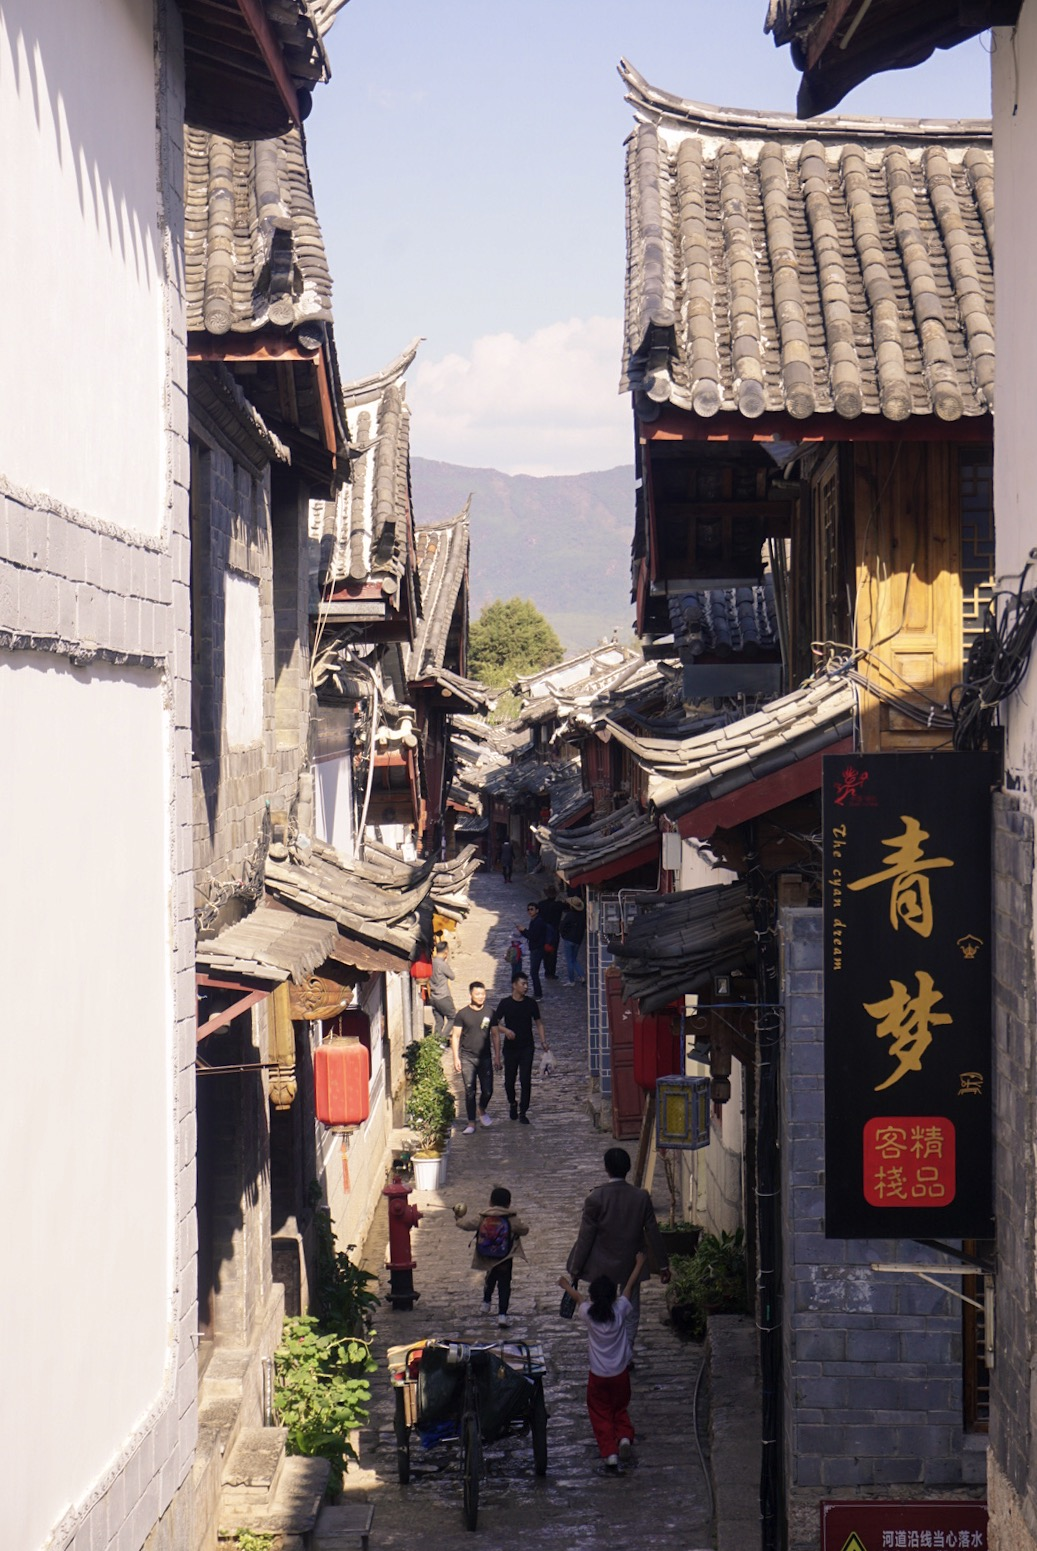 CocoGigiDesign -China-Lijiang 2018_4396.JPG